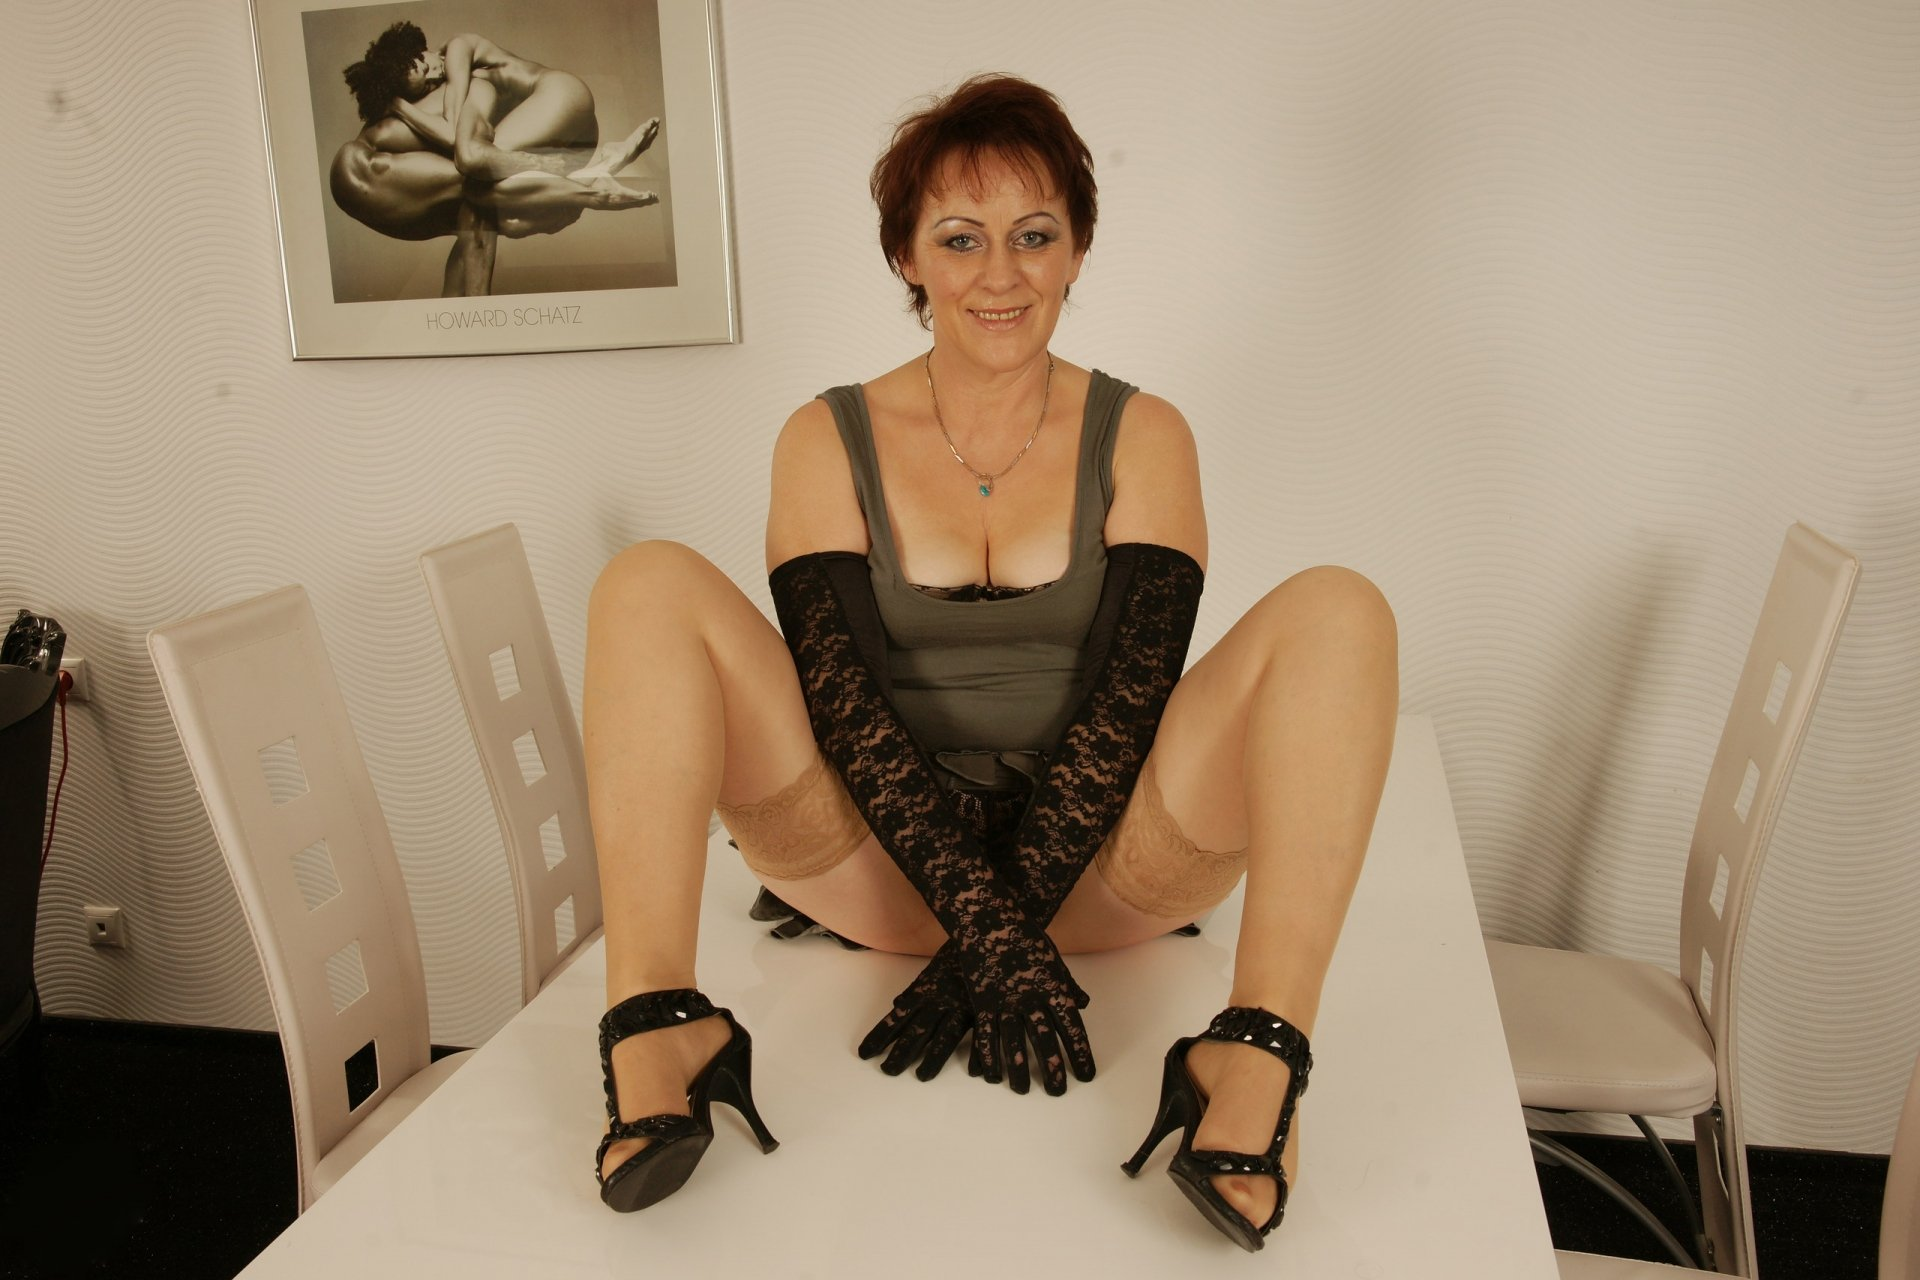 deLicatelySexy from Perth and Kinross,United Kingdom